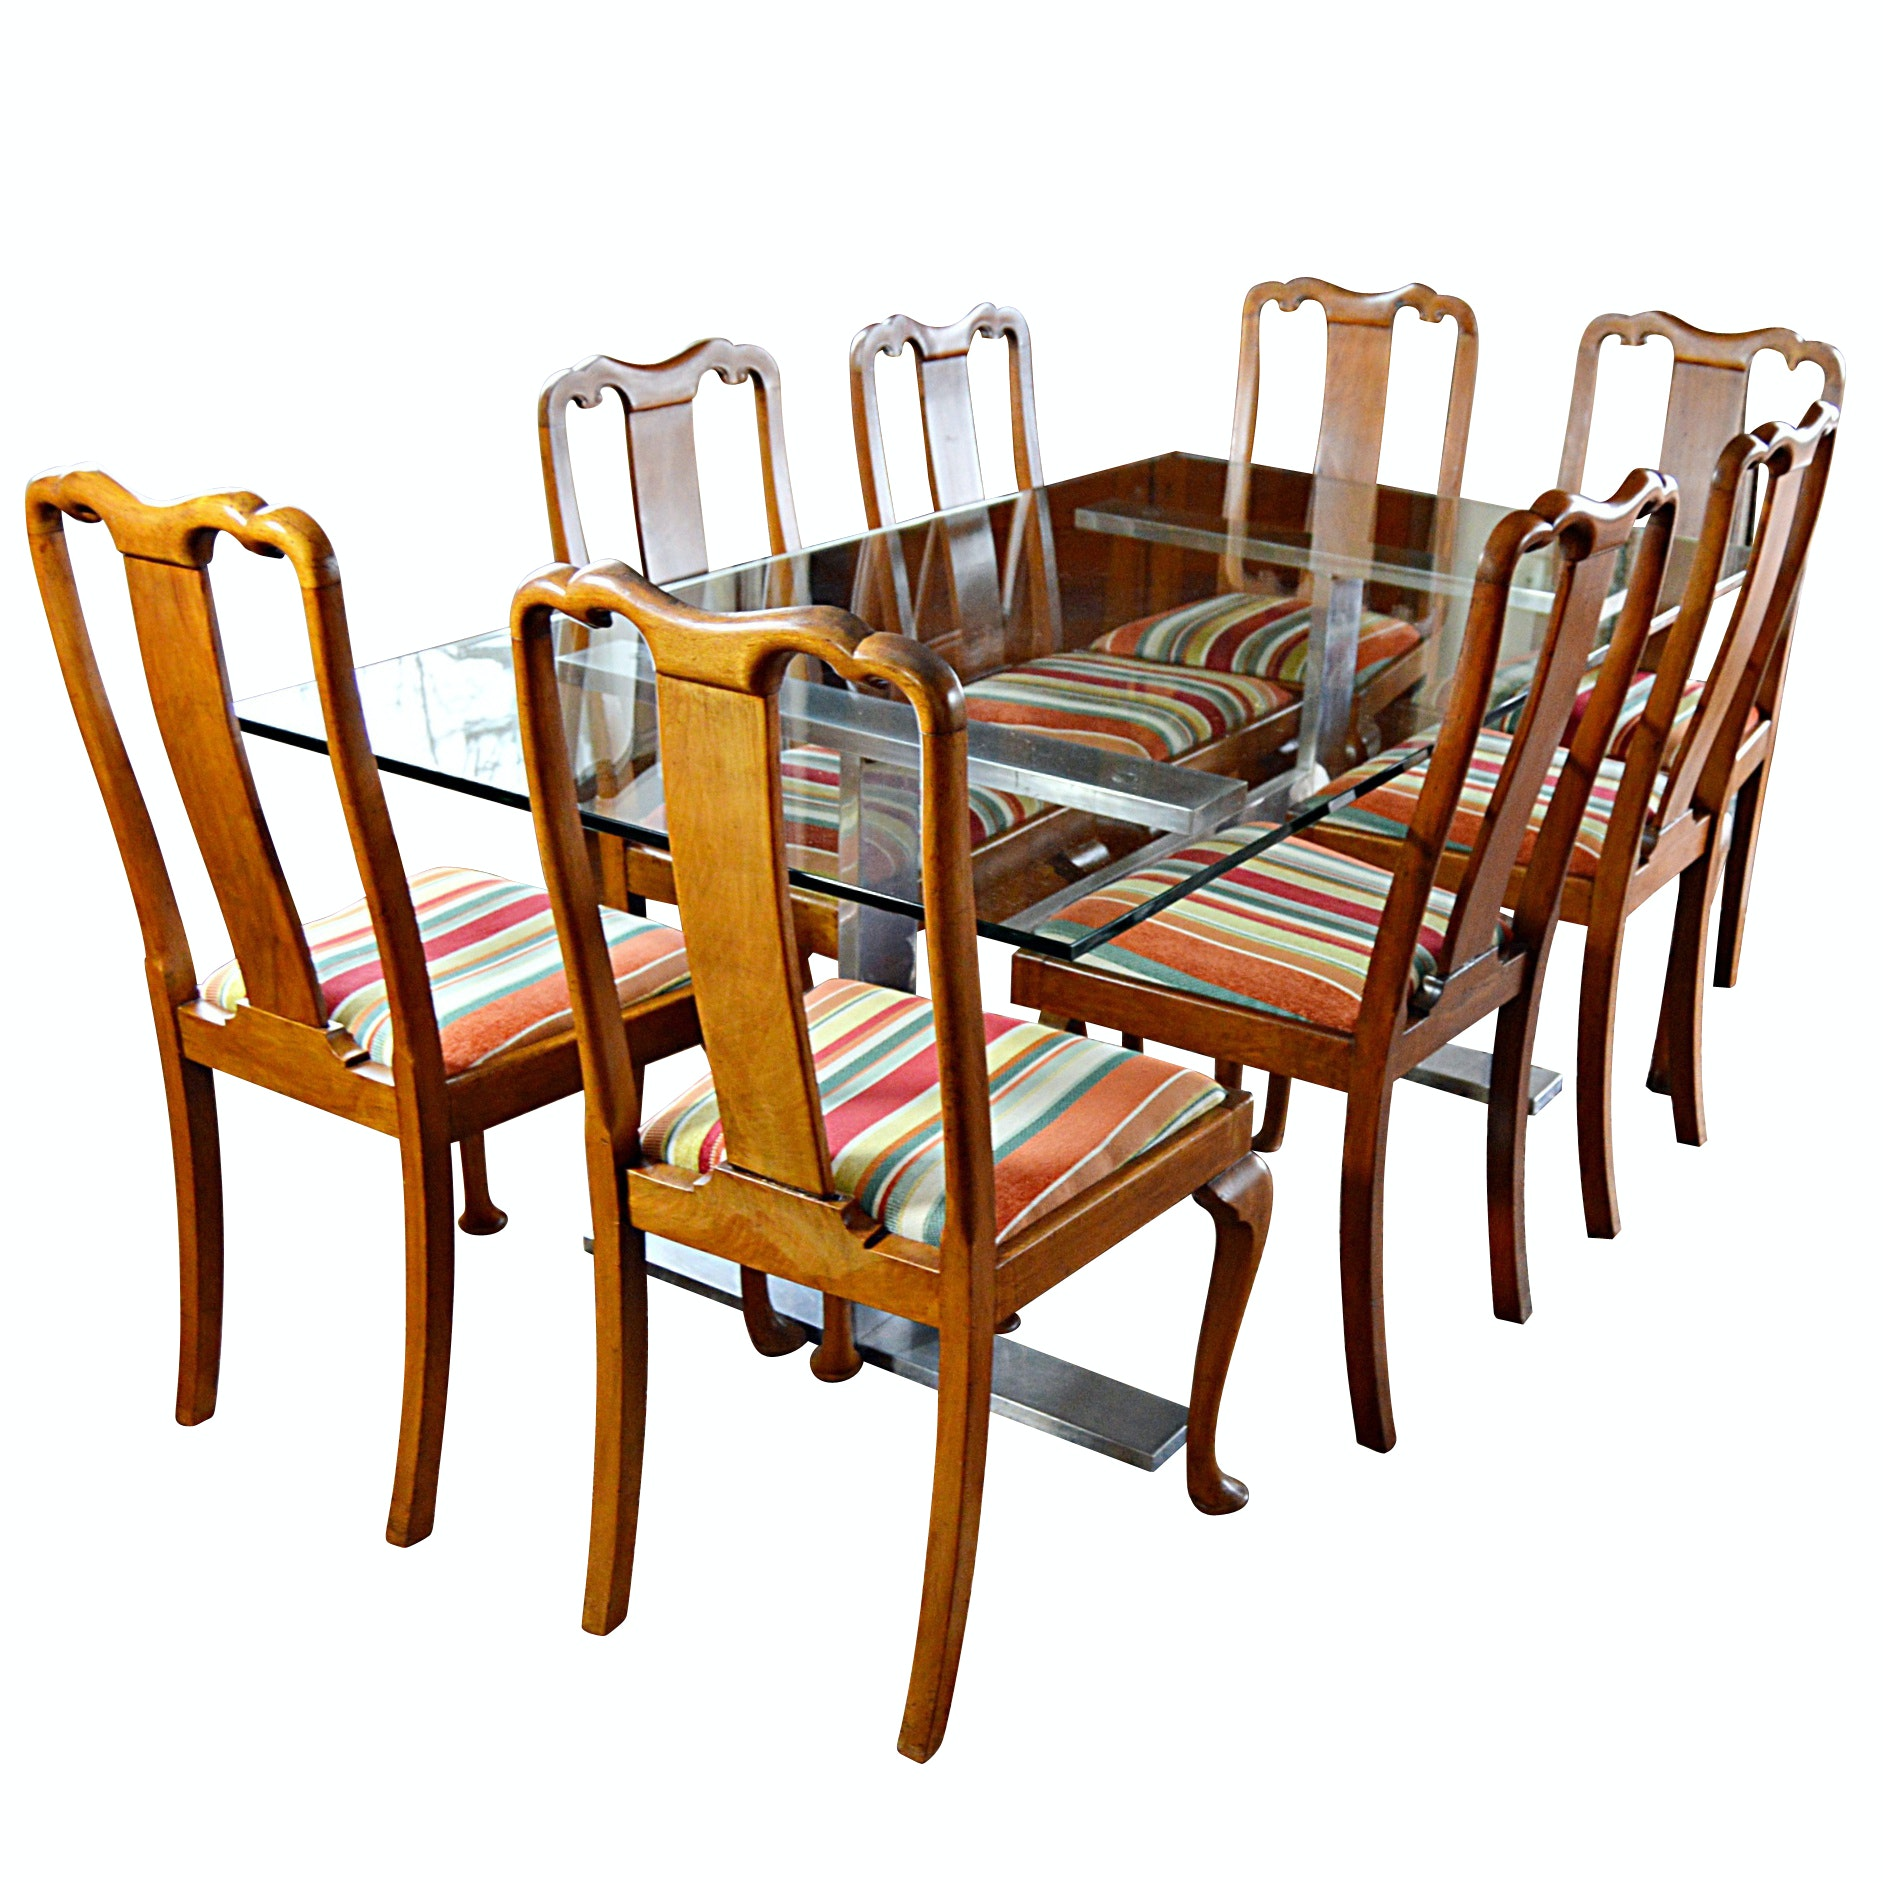 Contemporary Glass and Steel Table Paired with Set of Antique Chippendale Chairs